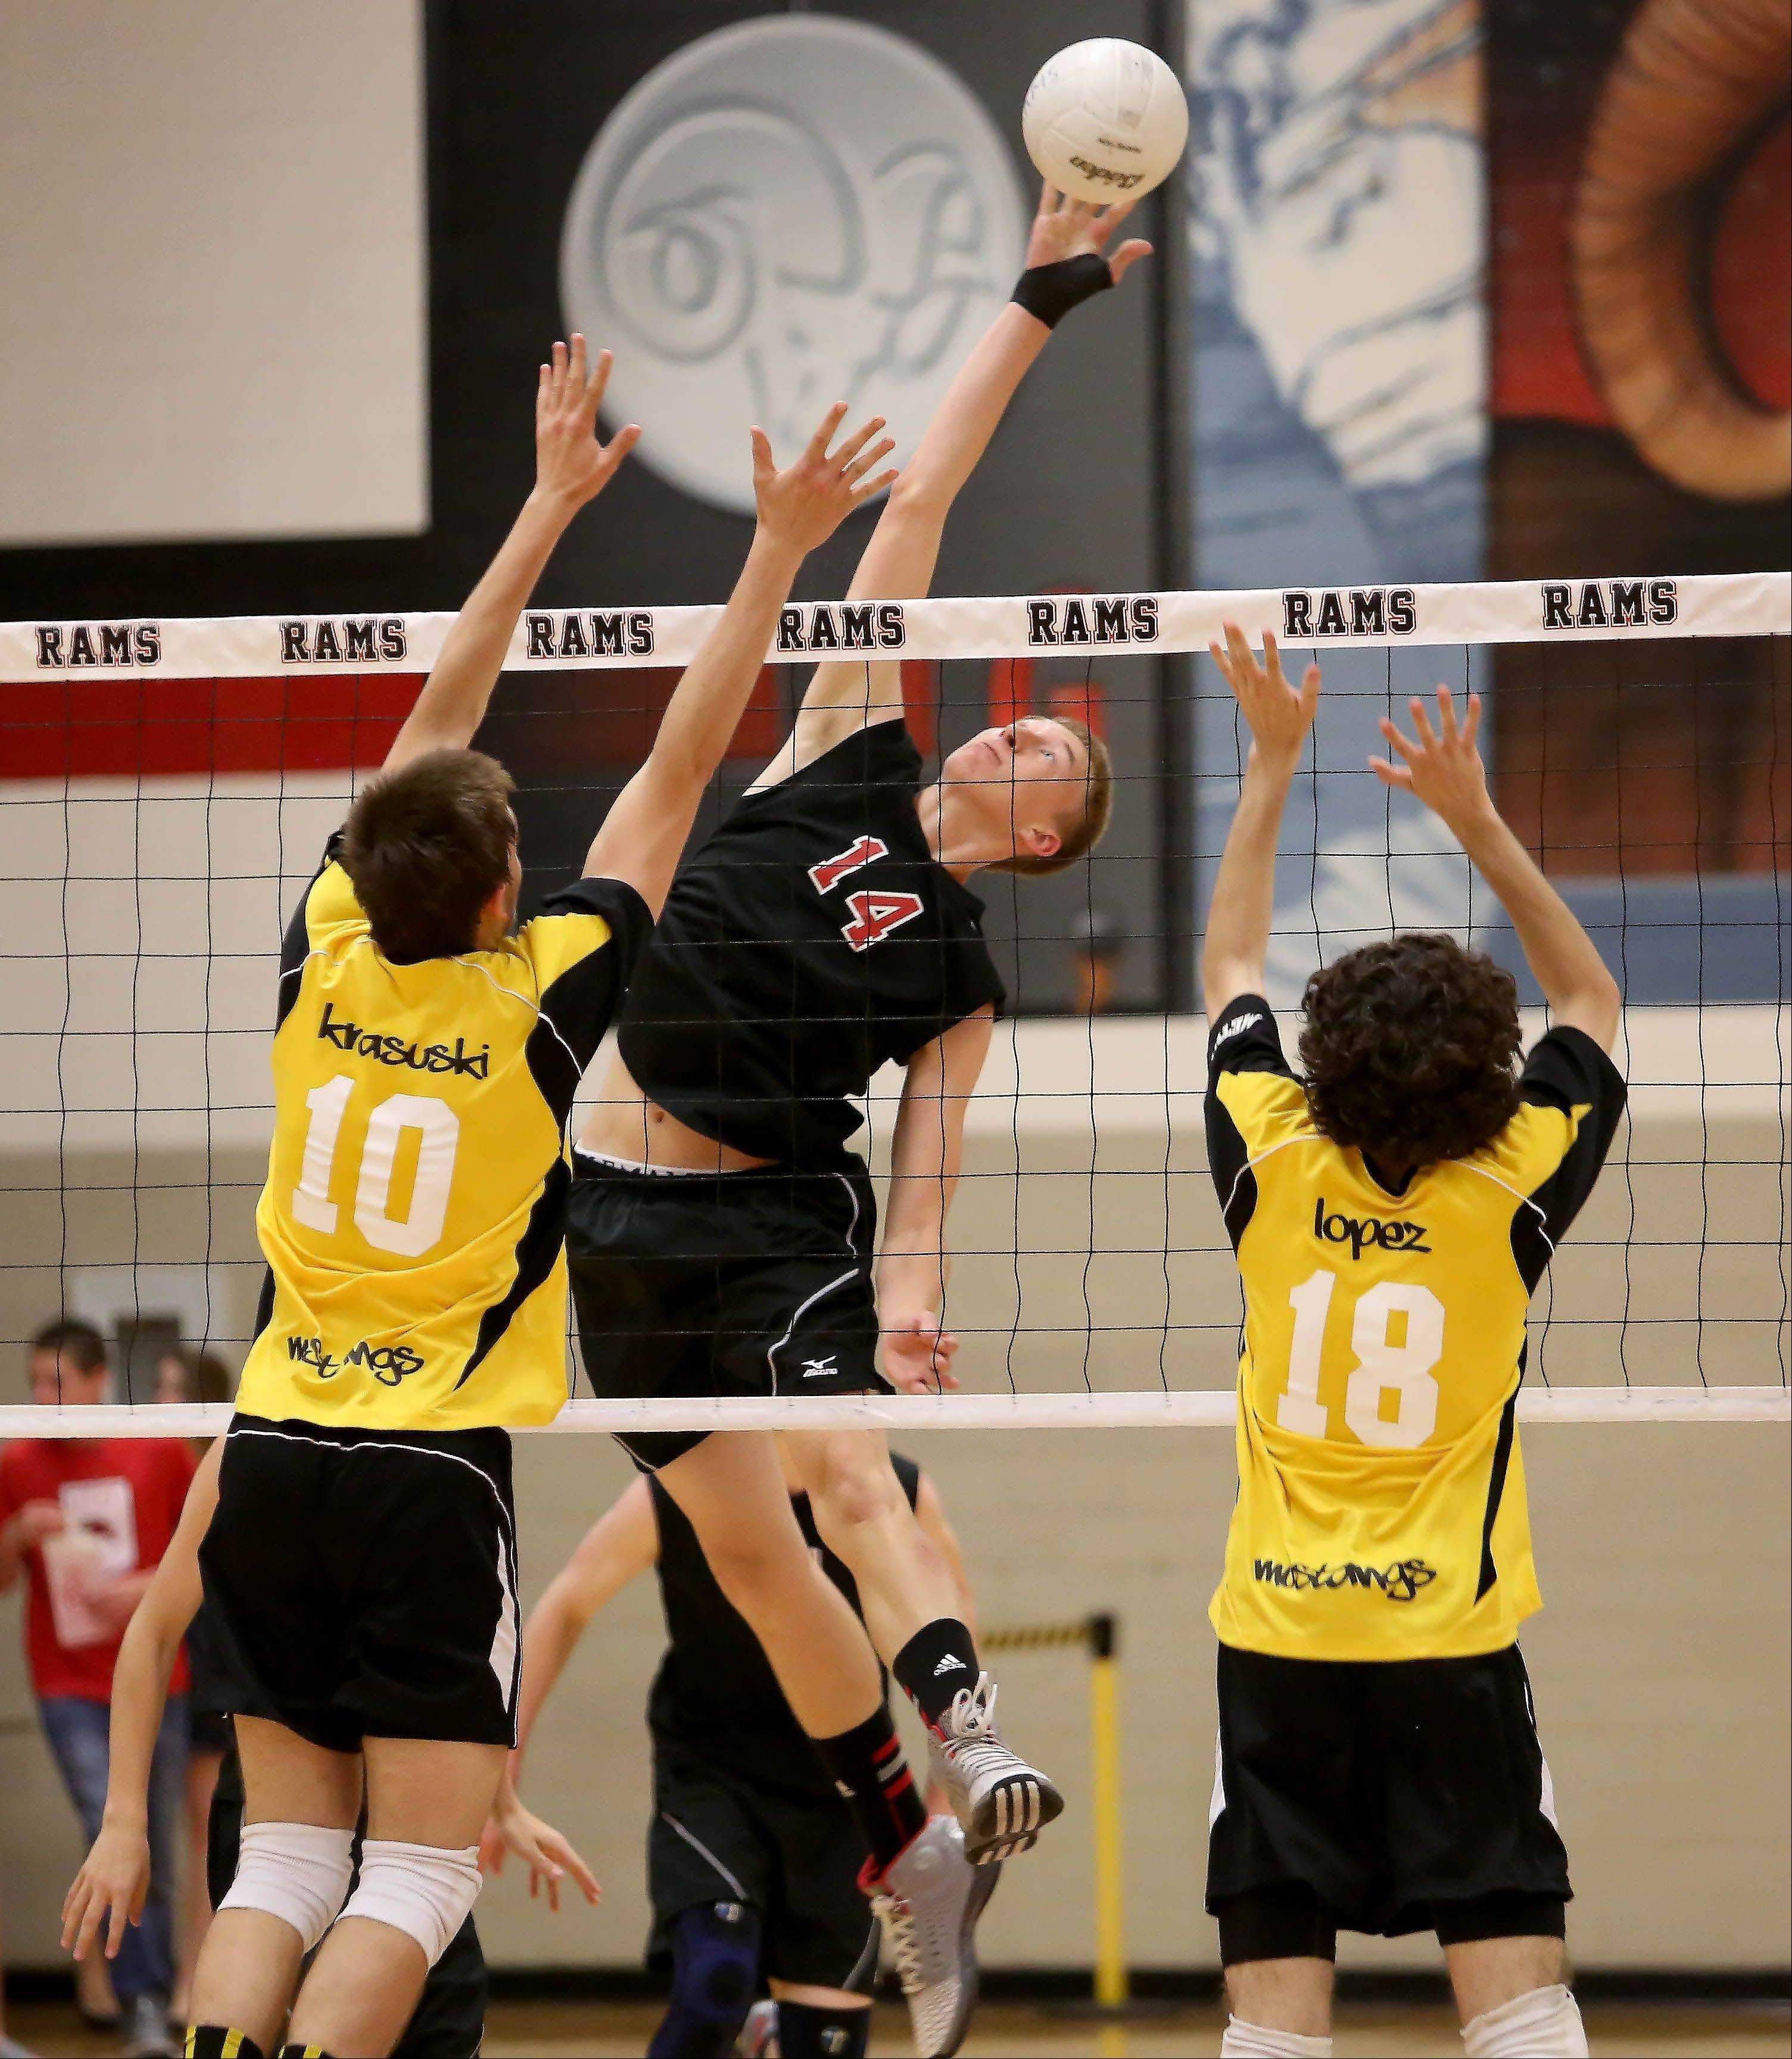 Dan Carlson of Glenbard East reaches up for the ball in boys regional volleyball action against Metea Valley in Lombard in Tuesday.